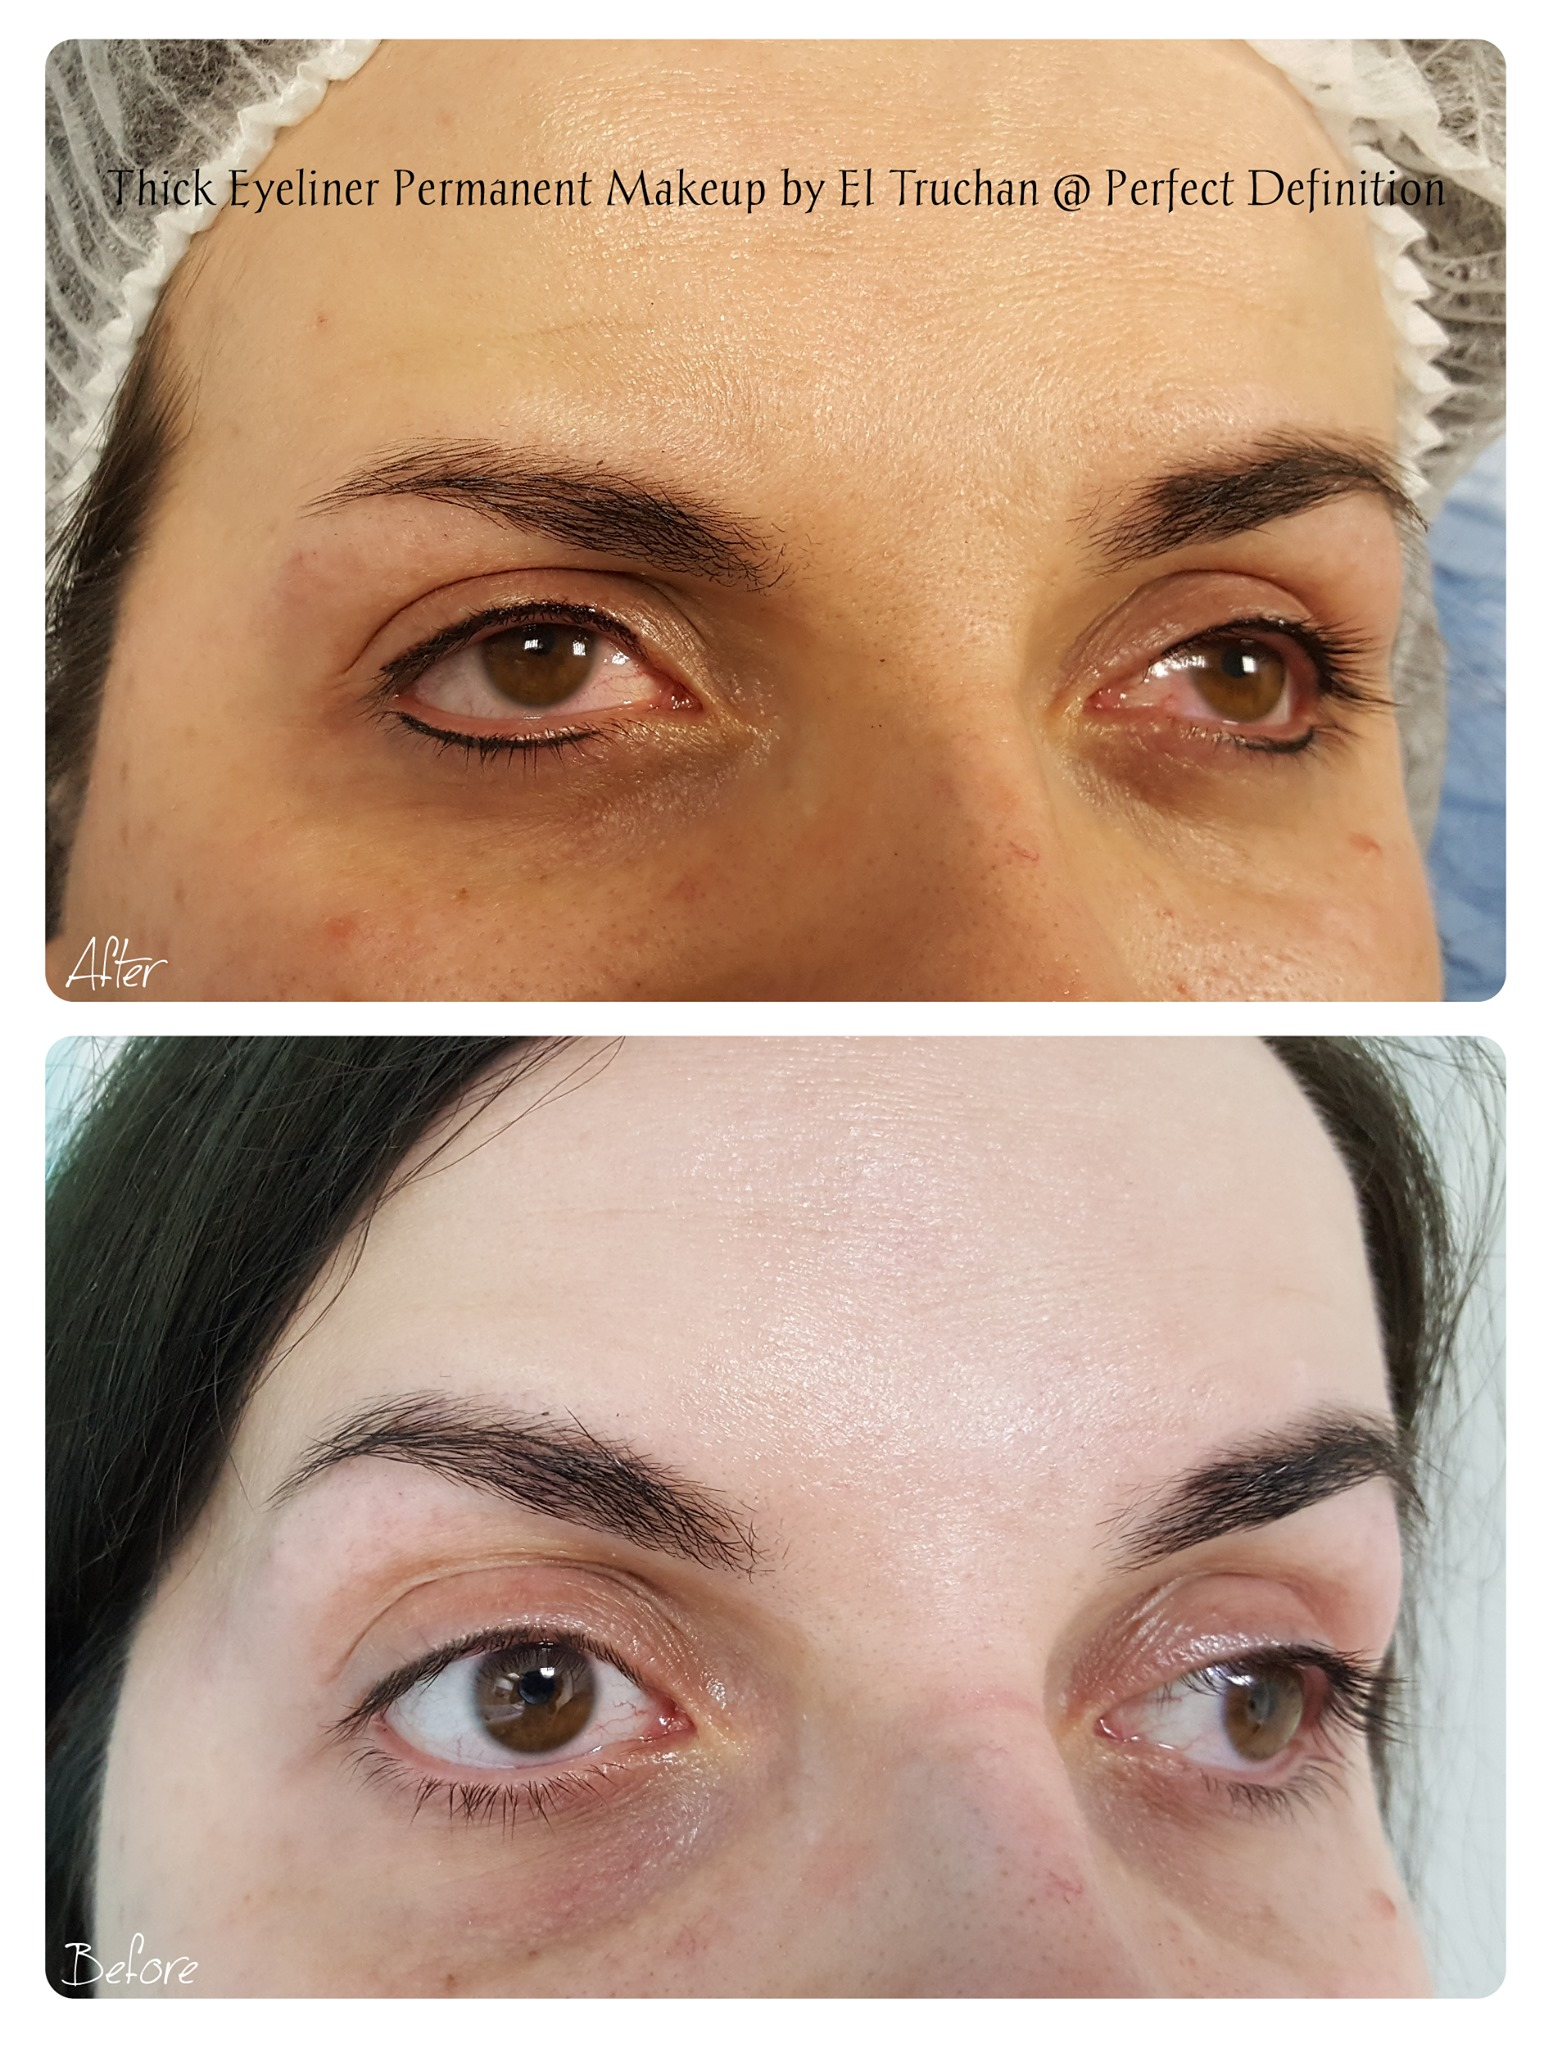 Thick Eyeliner Permanent Makeup by El Tr